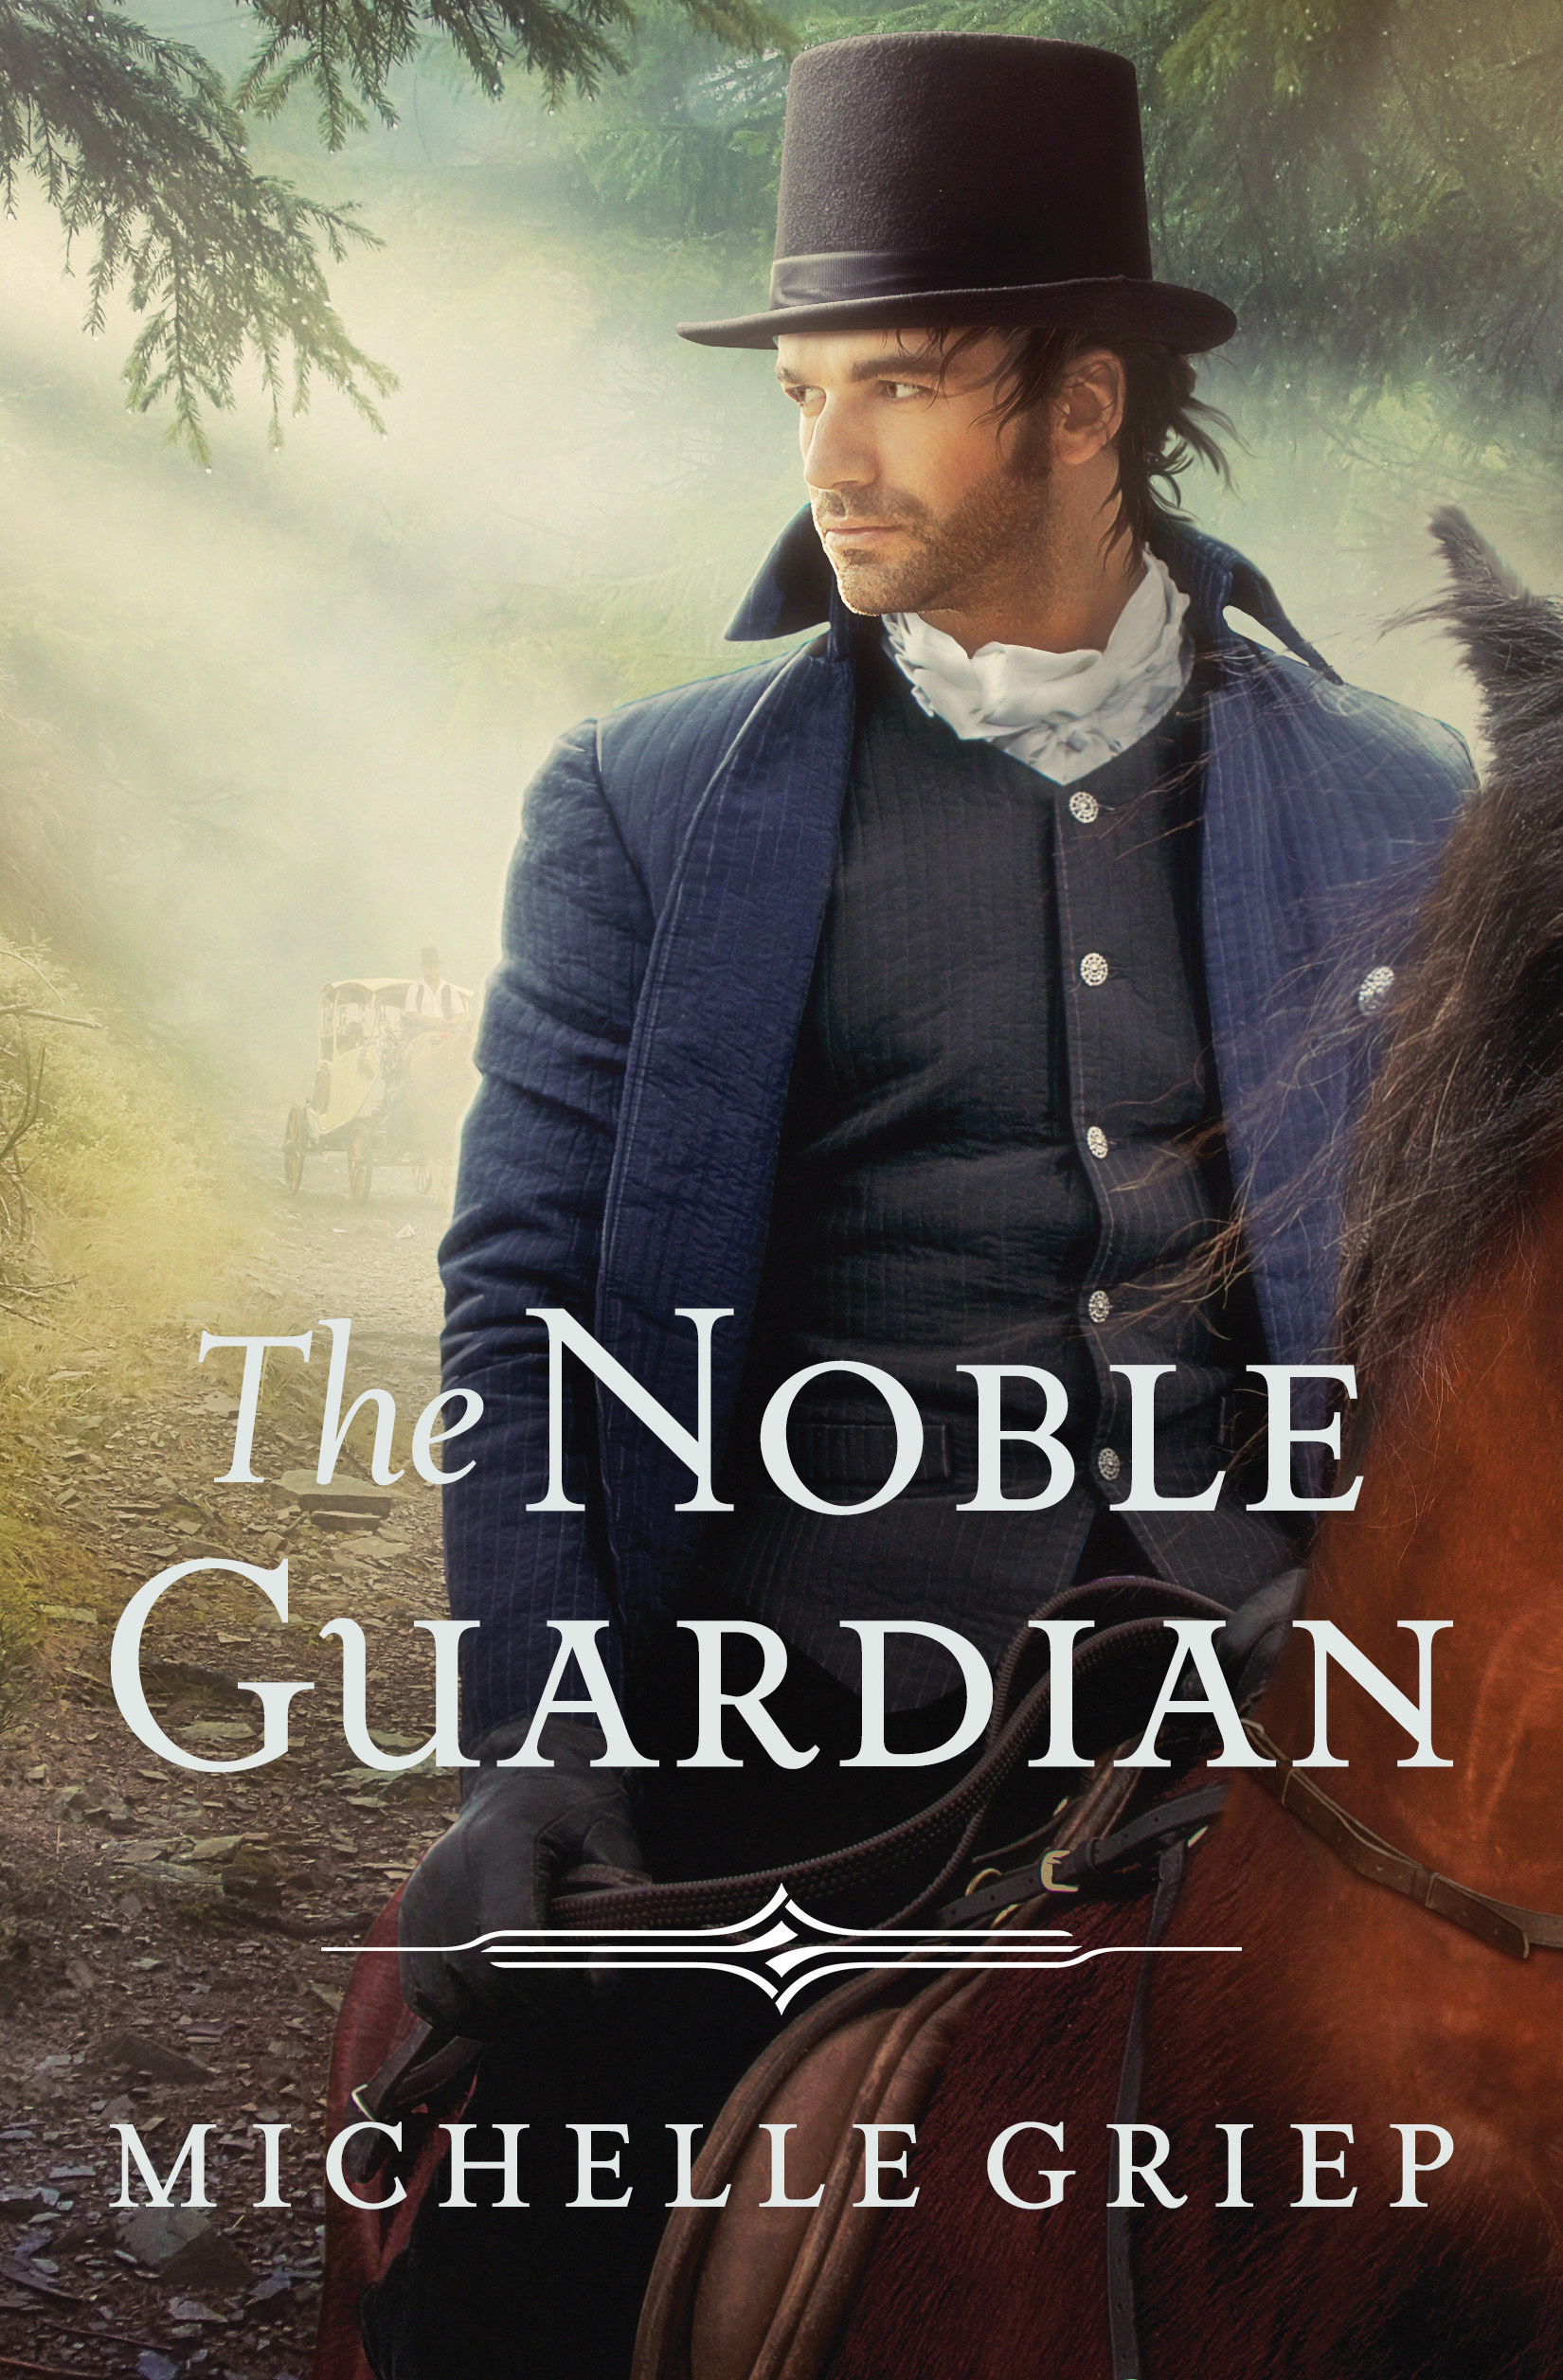 THE NOBLE GUARDIAN ~ Review & GiveAway!